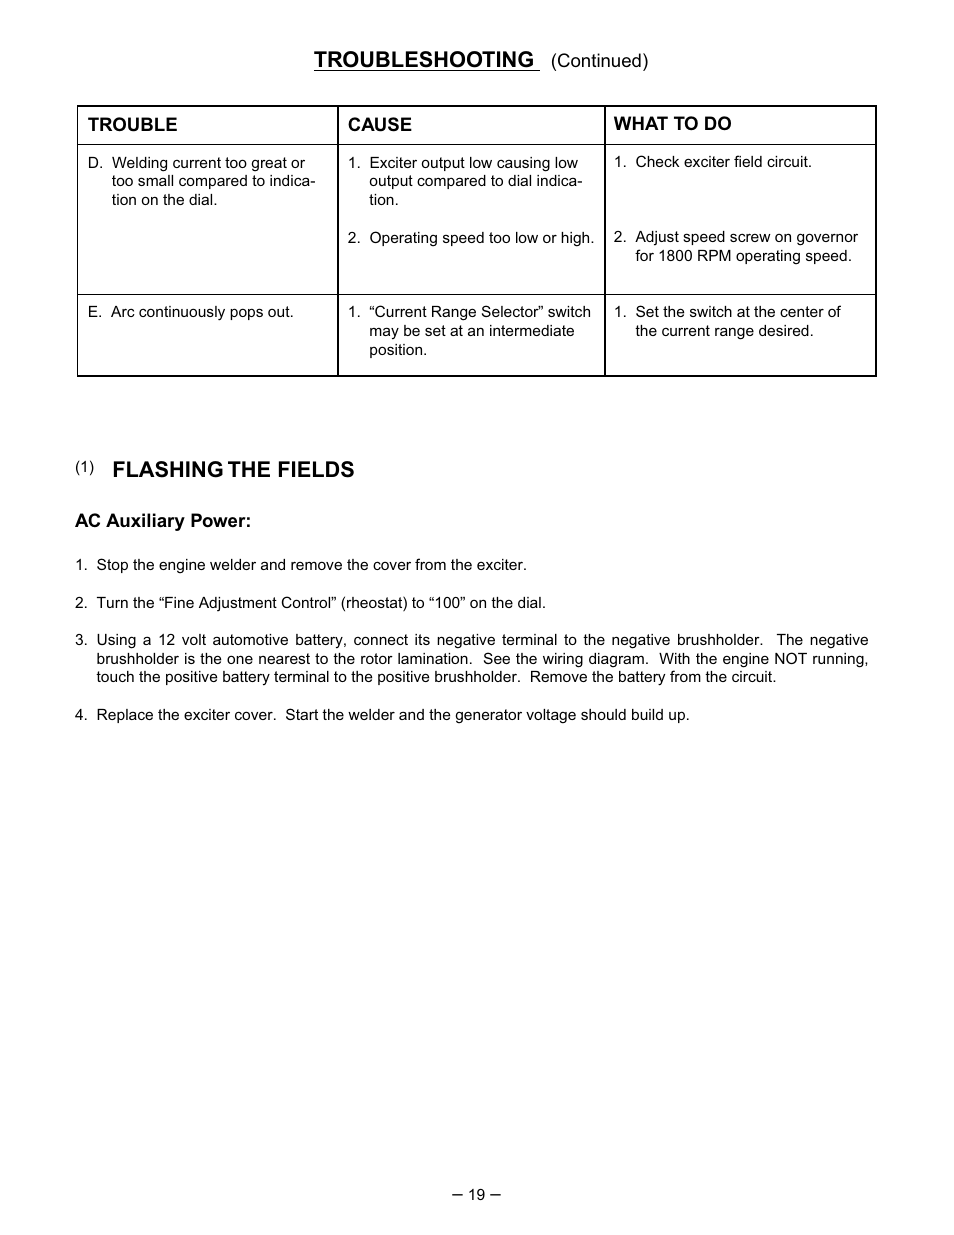 hight resolution of troubleshooting flashing the fields lincoln electric perkins sa 250 user manual page 20 28